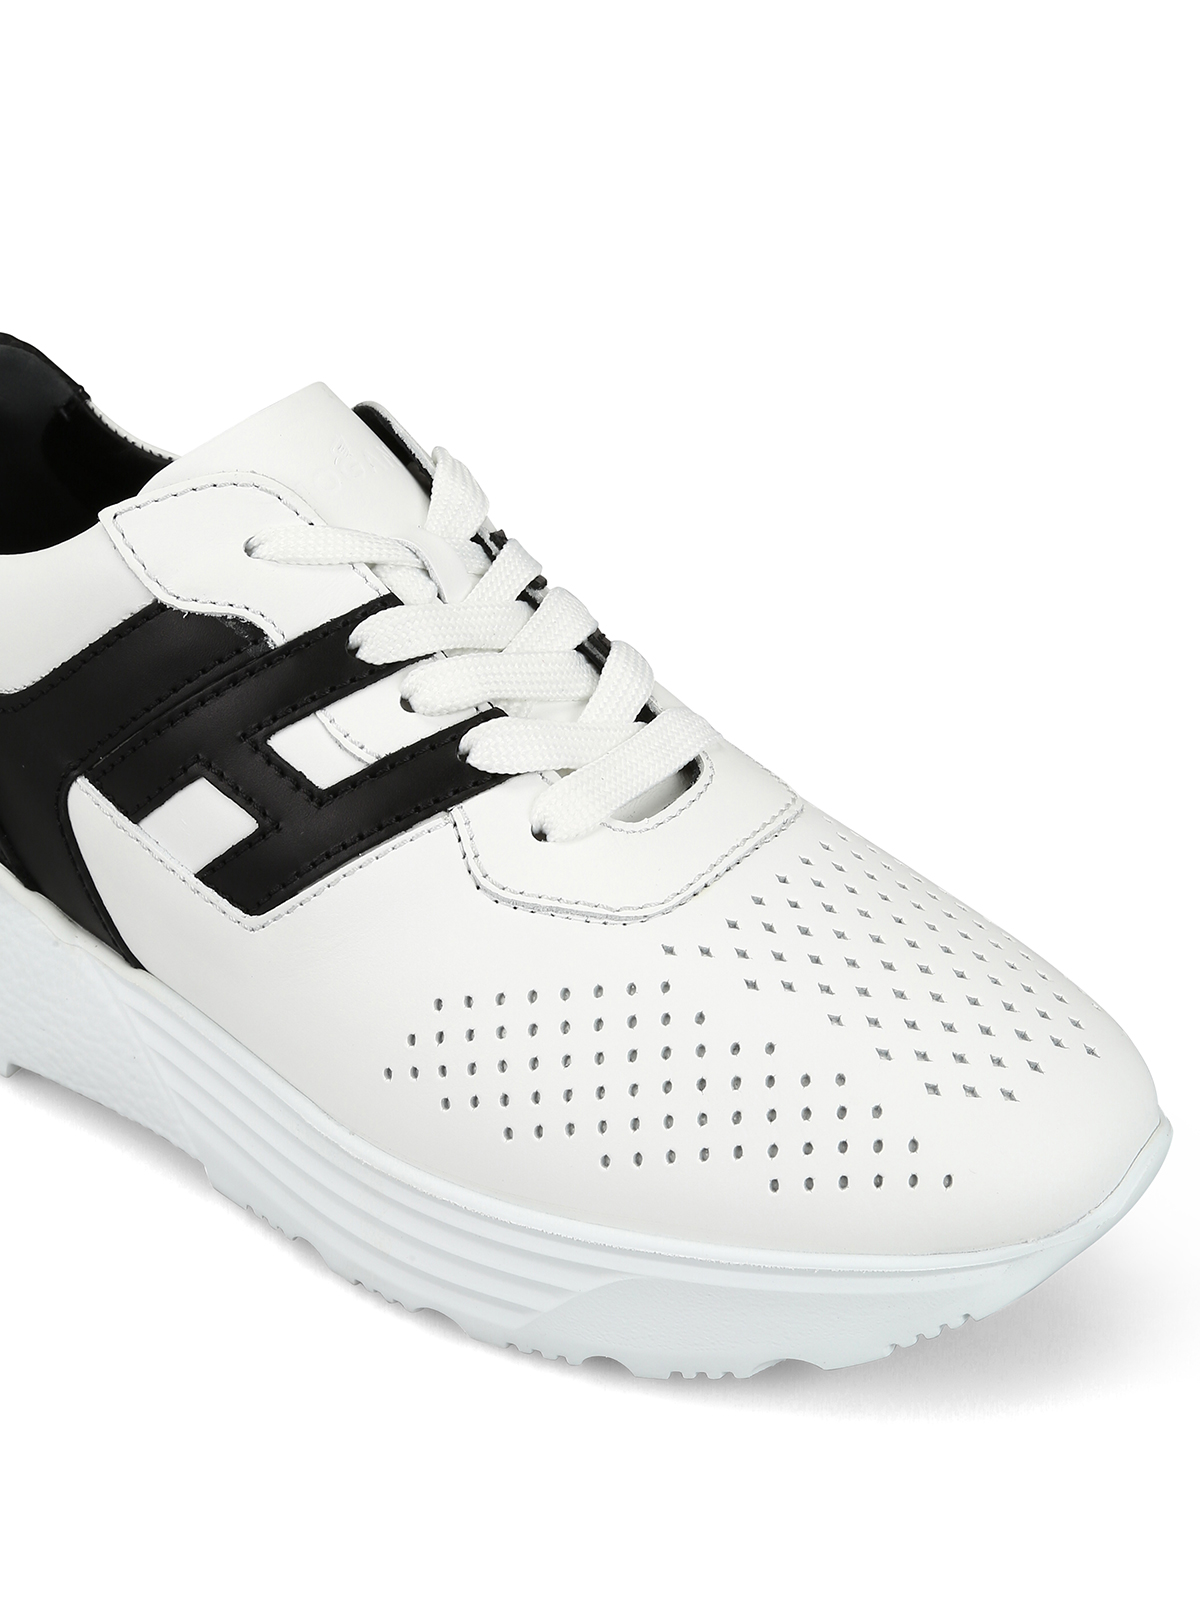 Sneakers Hogan - Sneaker Active One bianche e nere ...